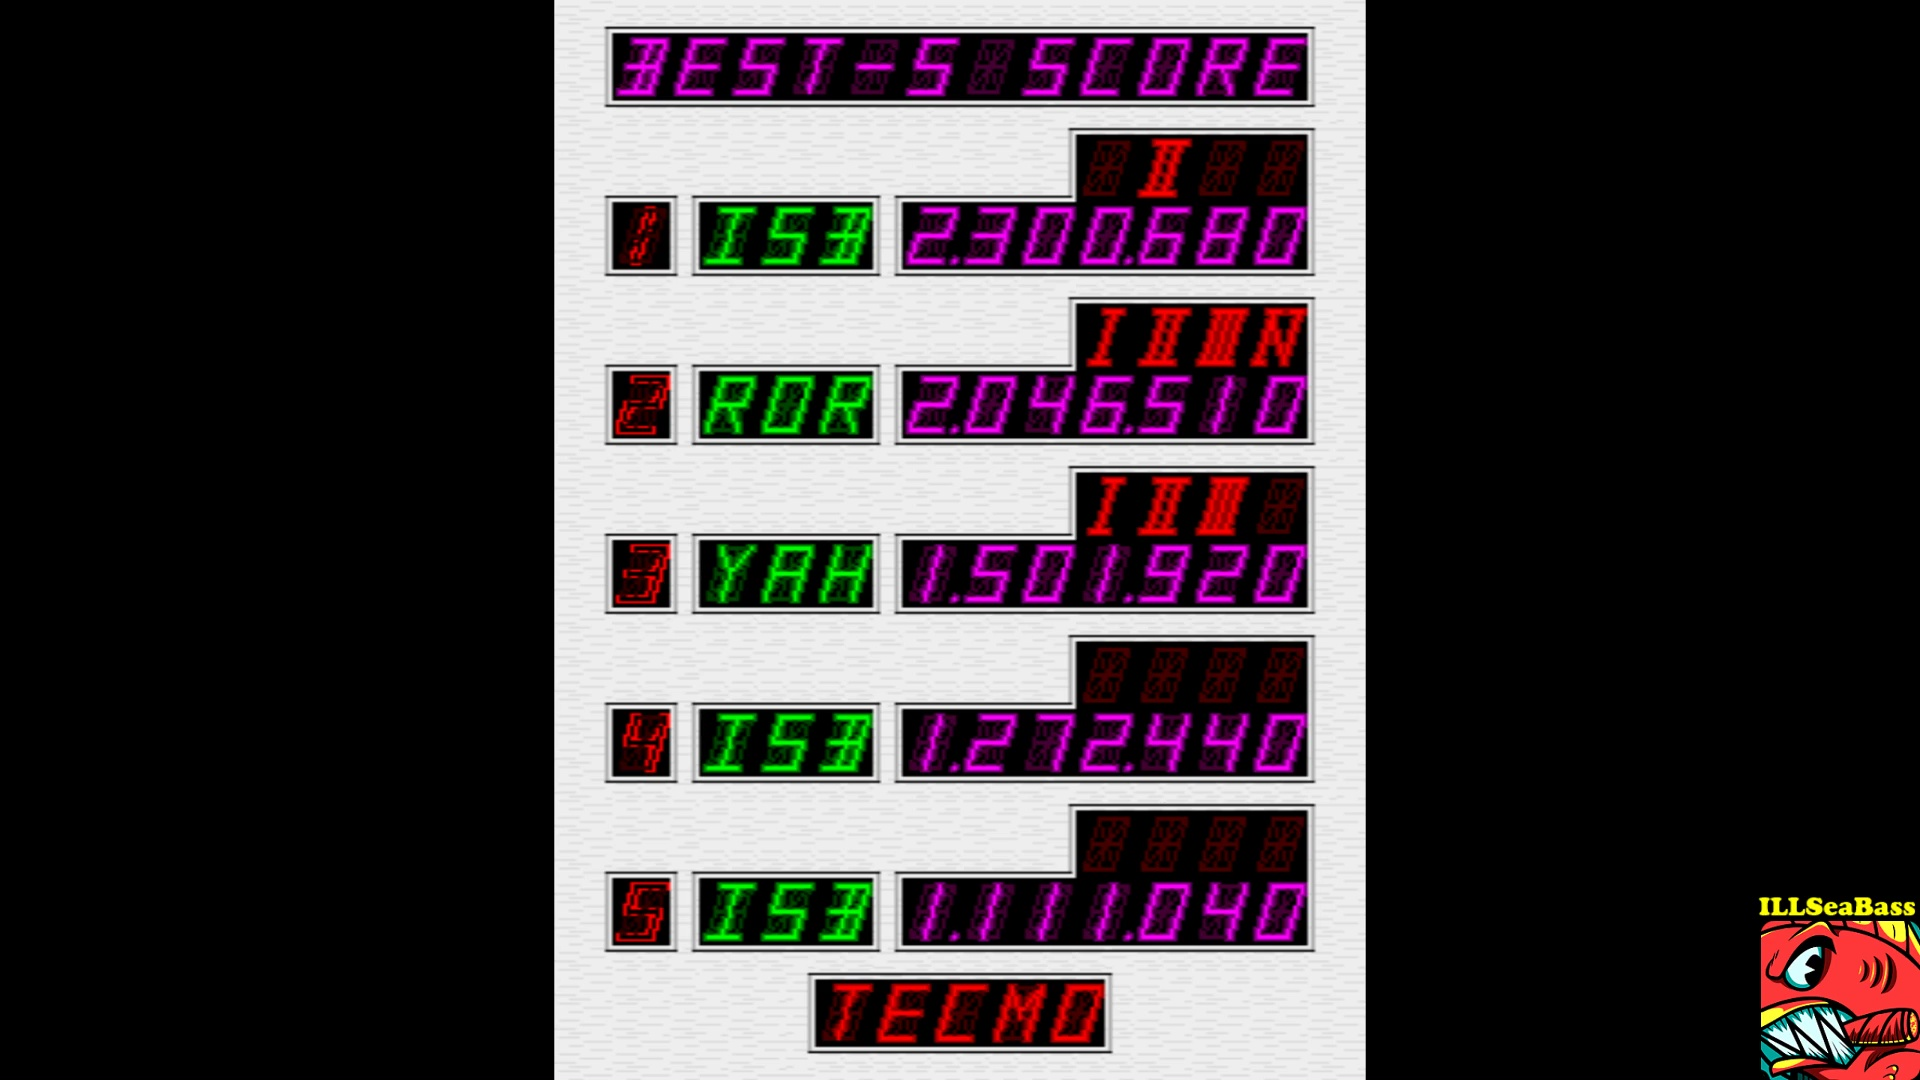 ILLSeaBass: Super Pinball Action [spbactn] (Arcade Emulated / M.A.M.E.) 2,300,680 points on 2017-10-01 20:40:29